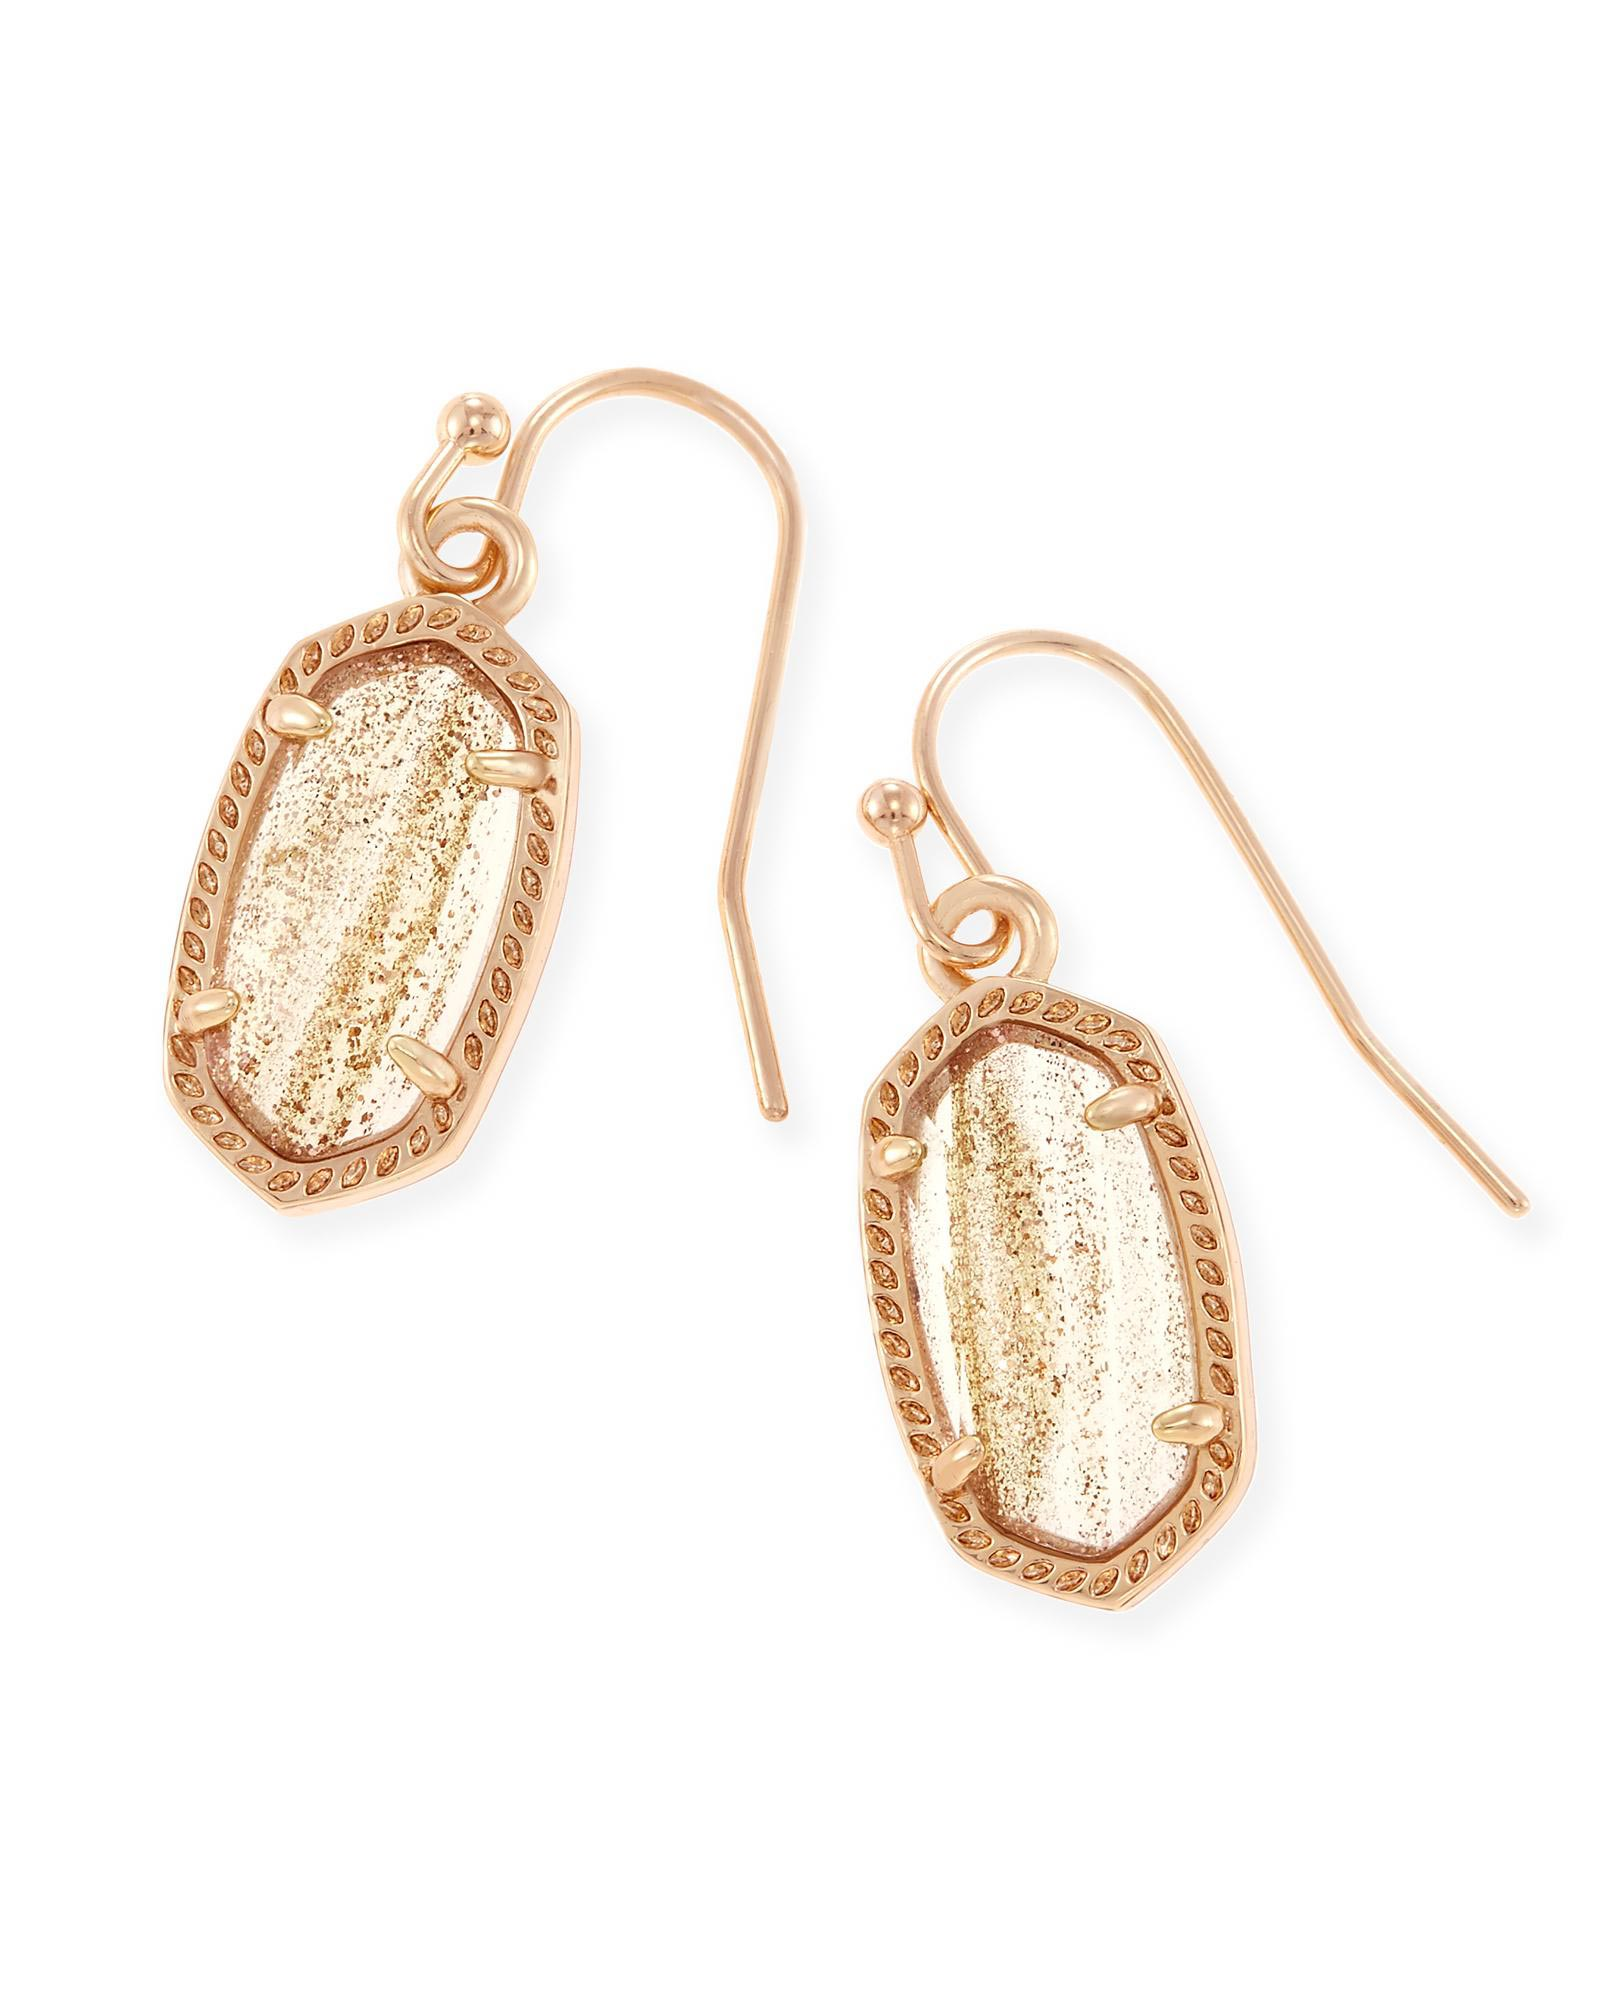 KENDRA SCOTT LEE EARRINGS IN ROSE GOLD